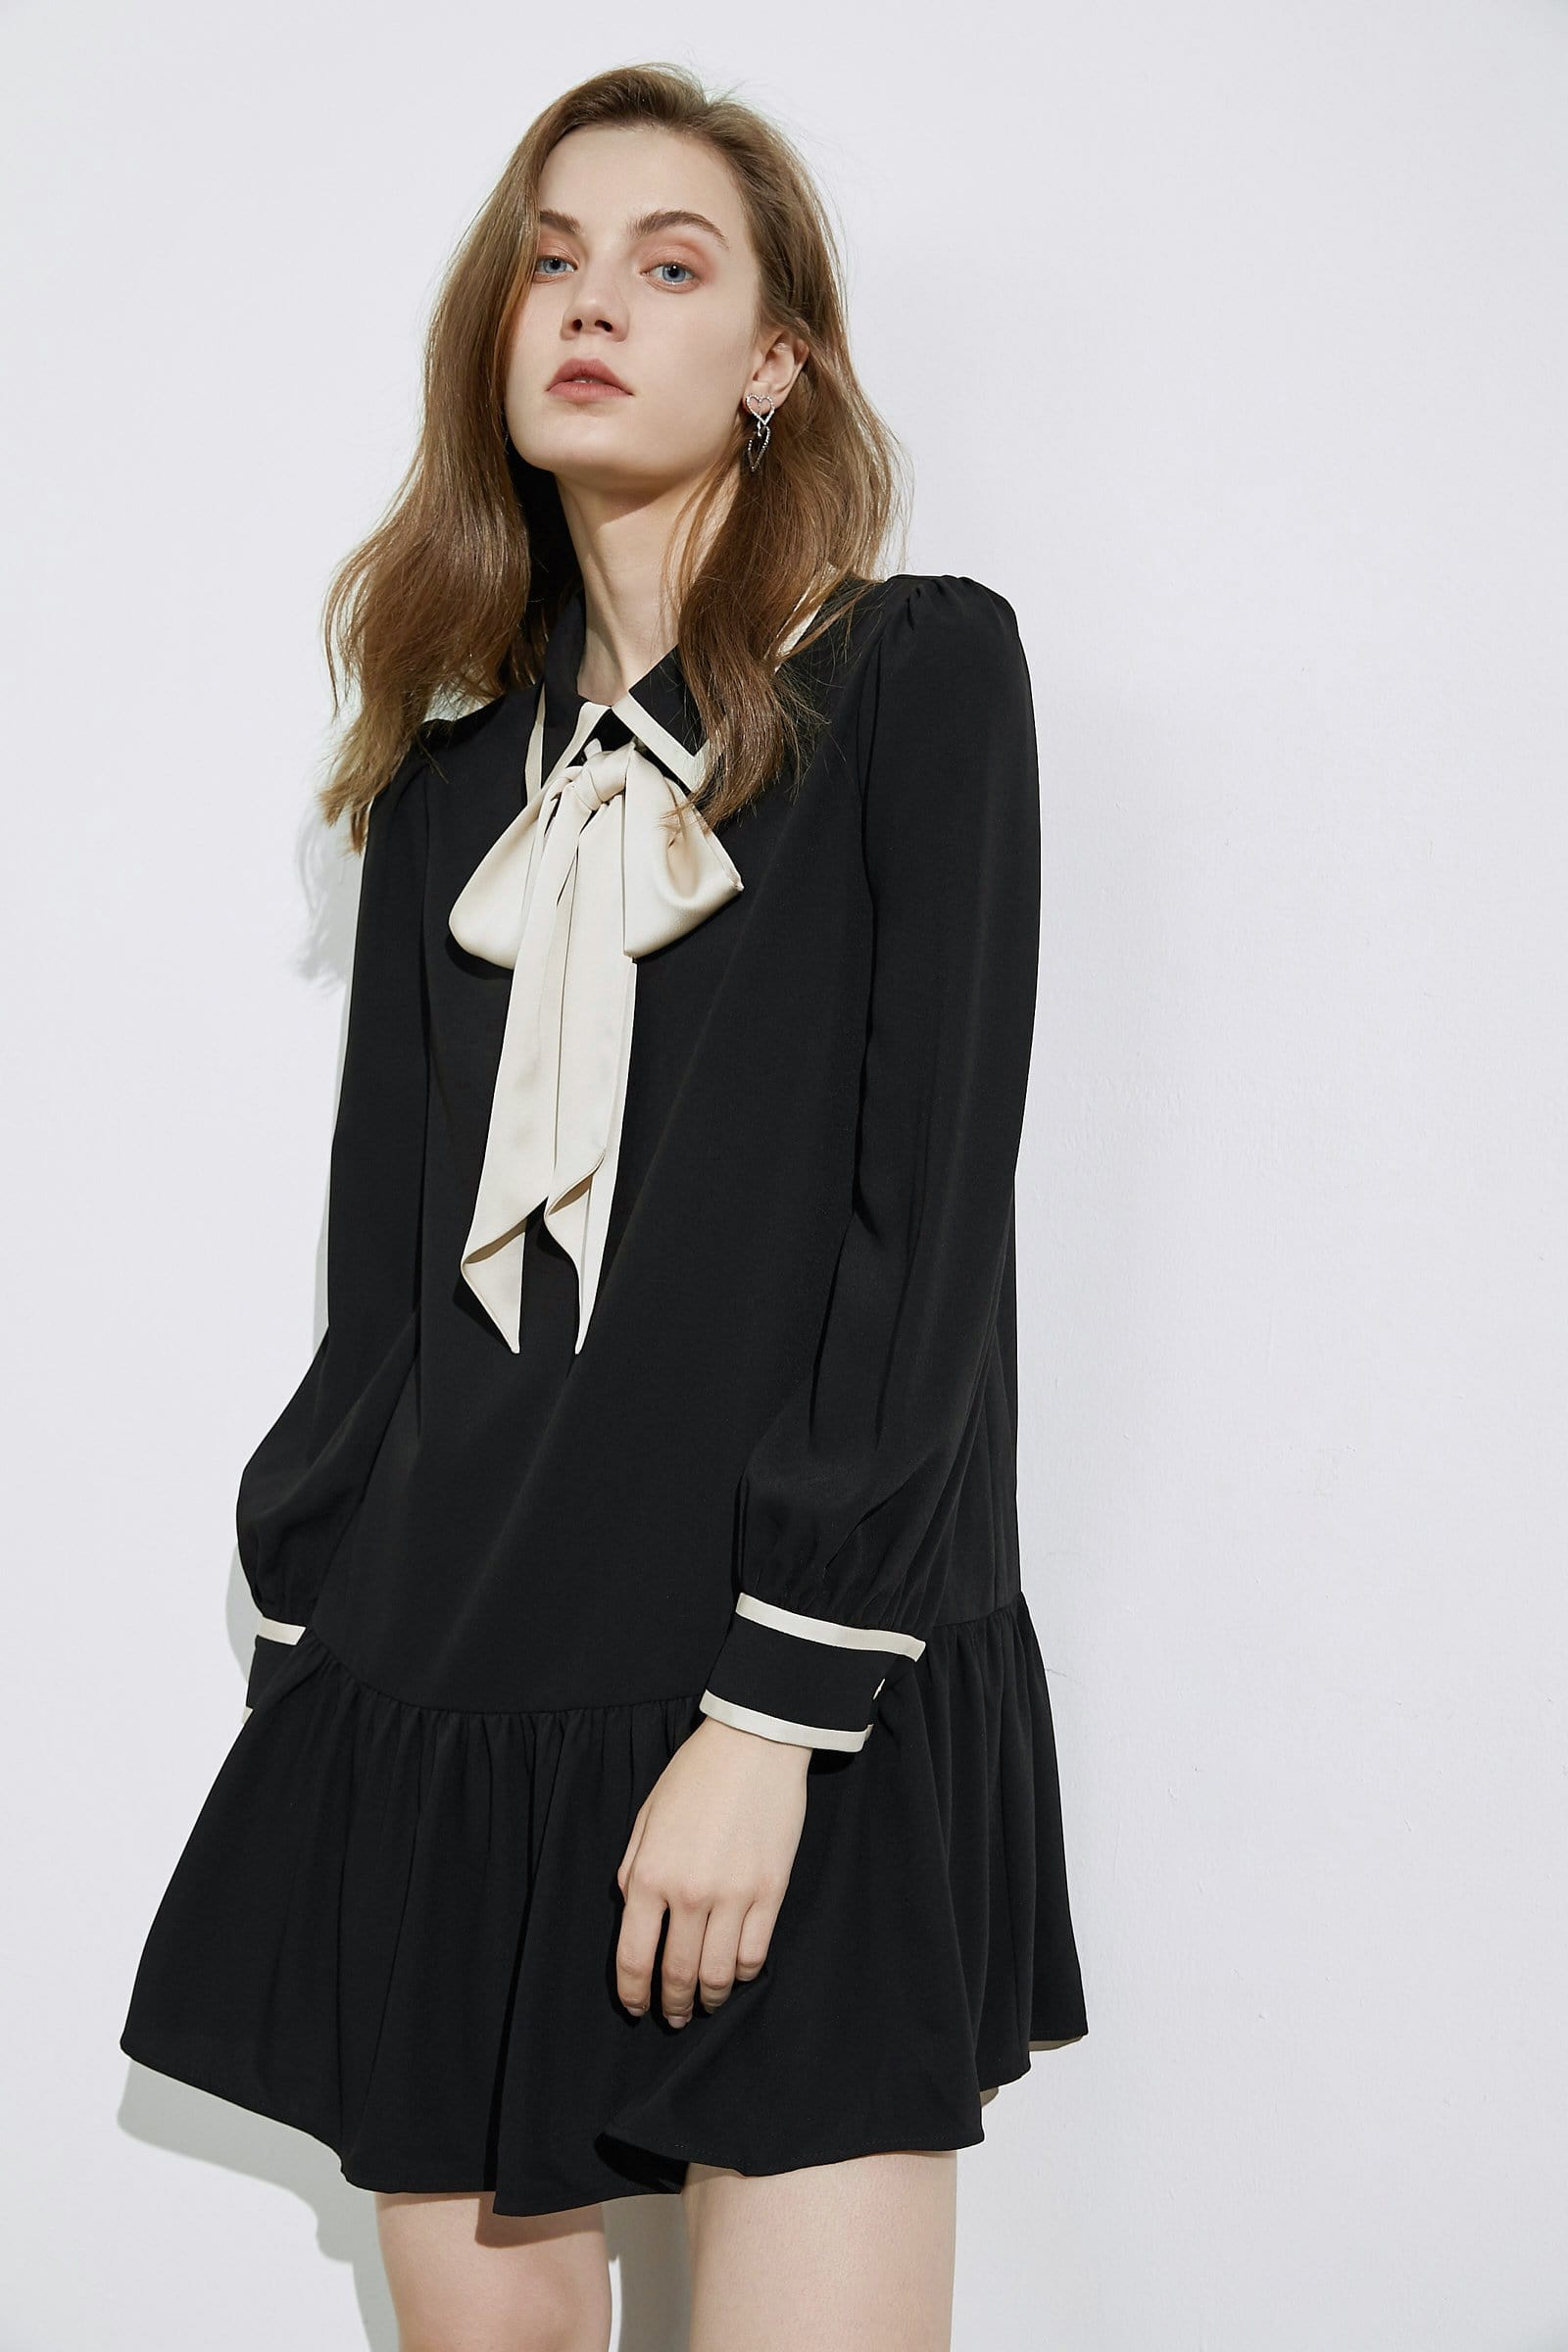 Melissa Black Bow Tie Dress